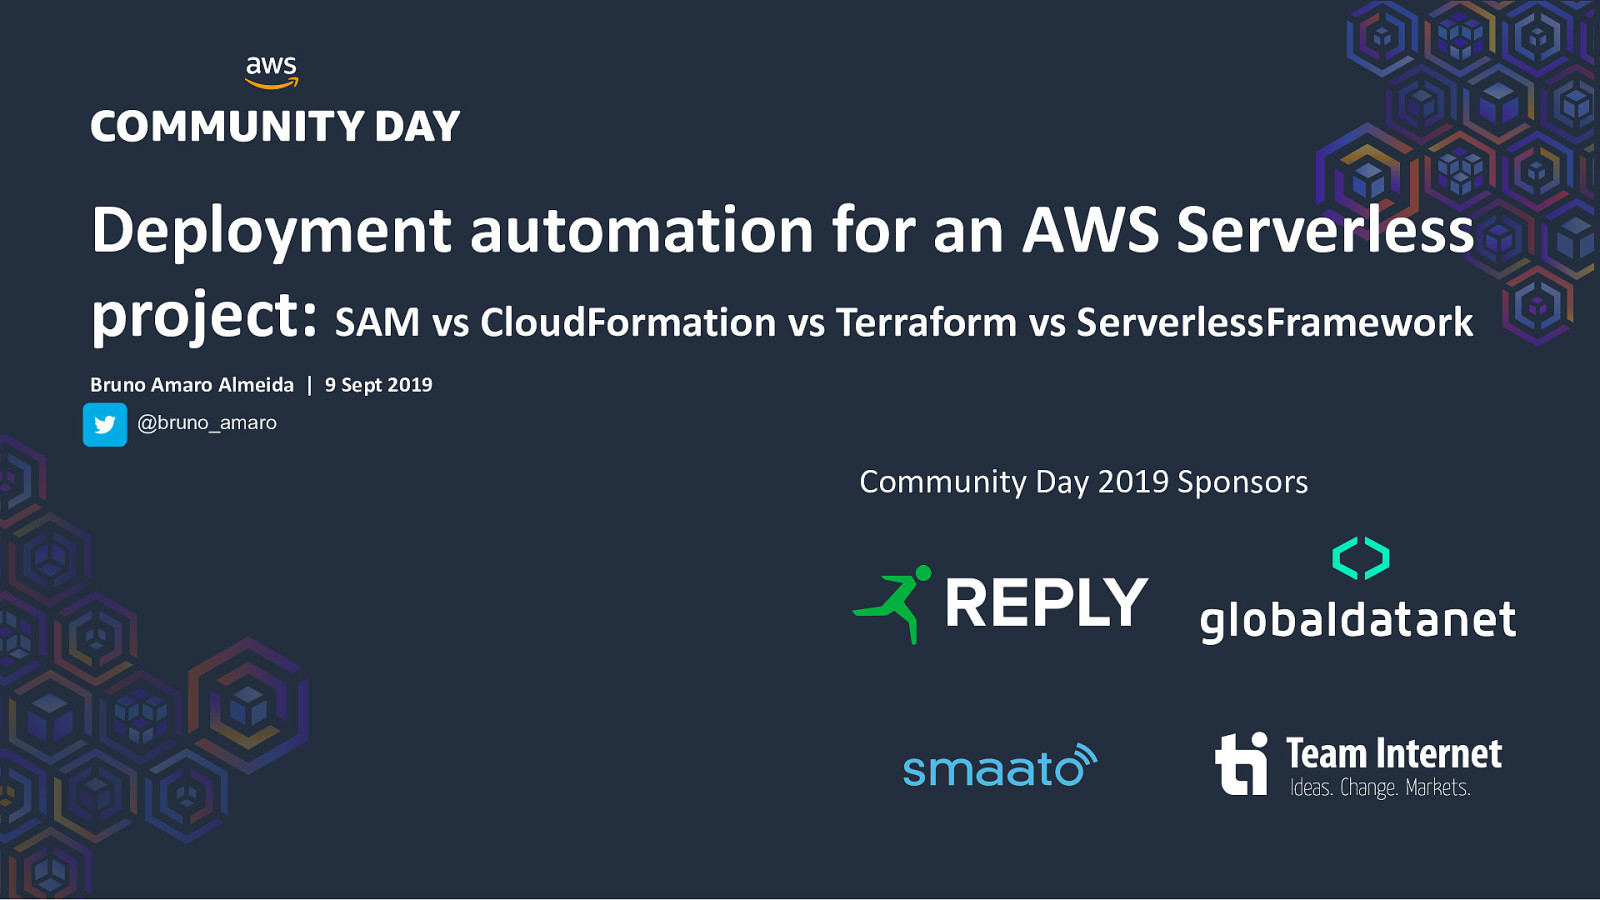 Deployment automation for an AWS Serverless project